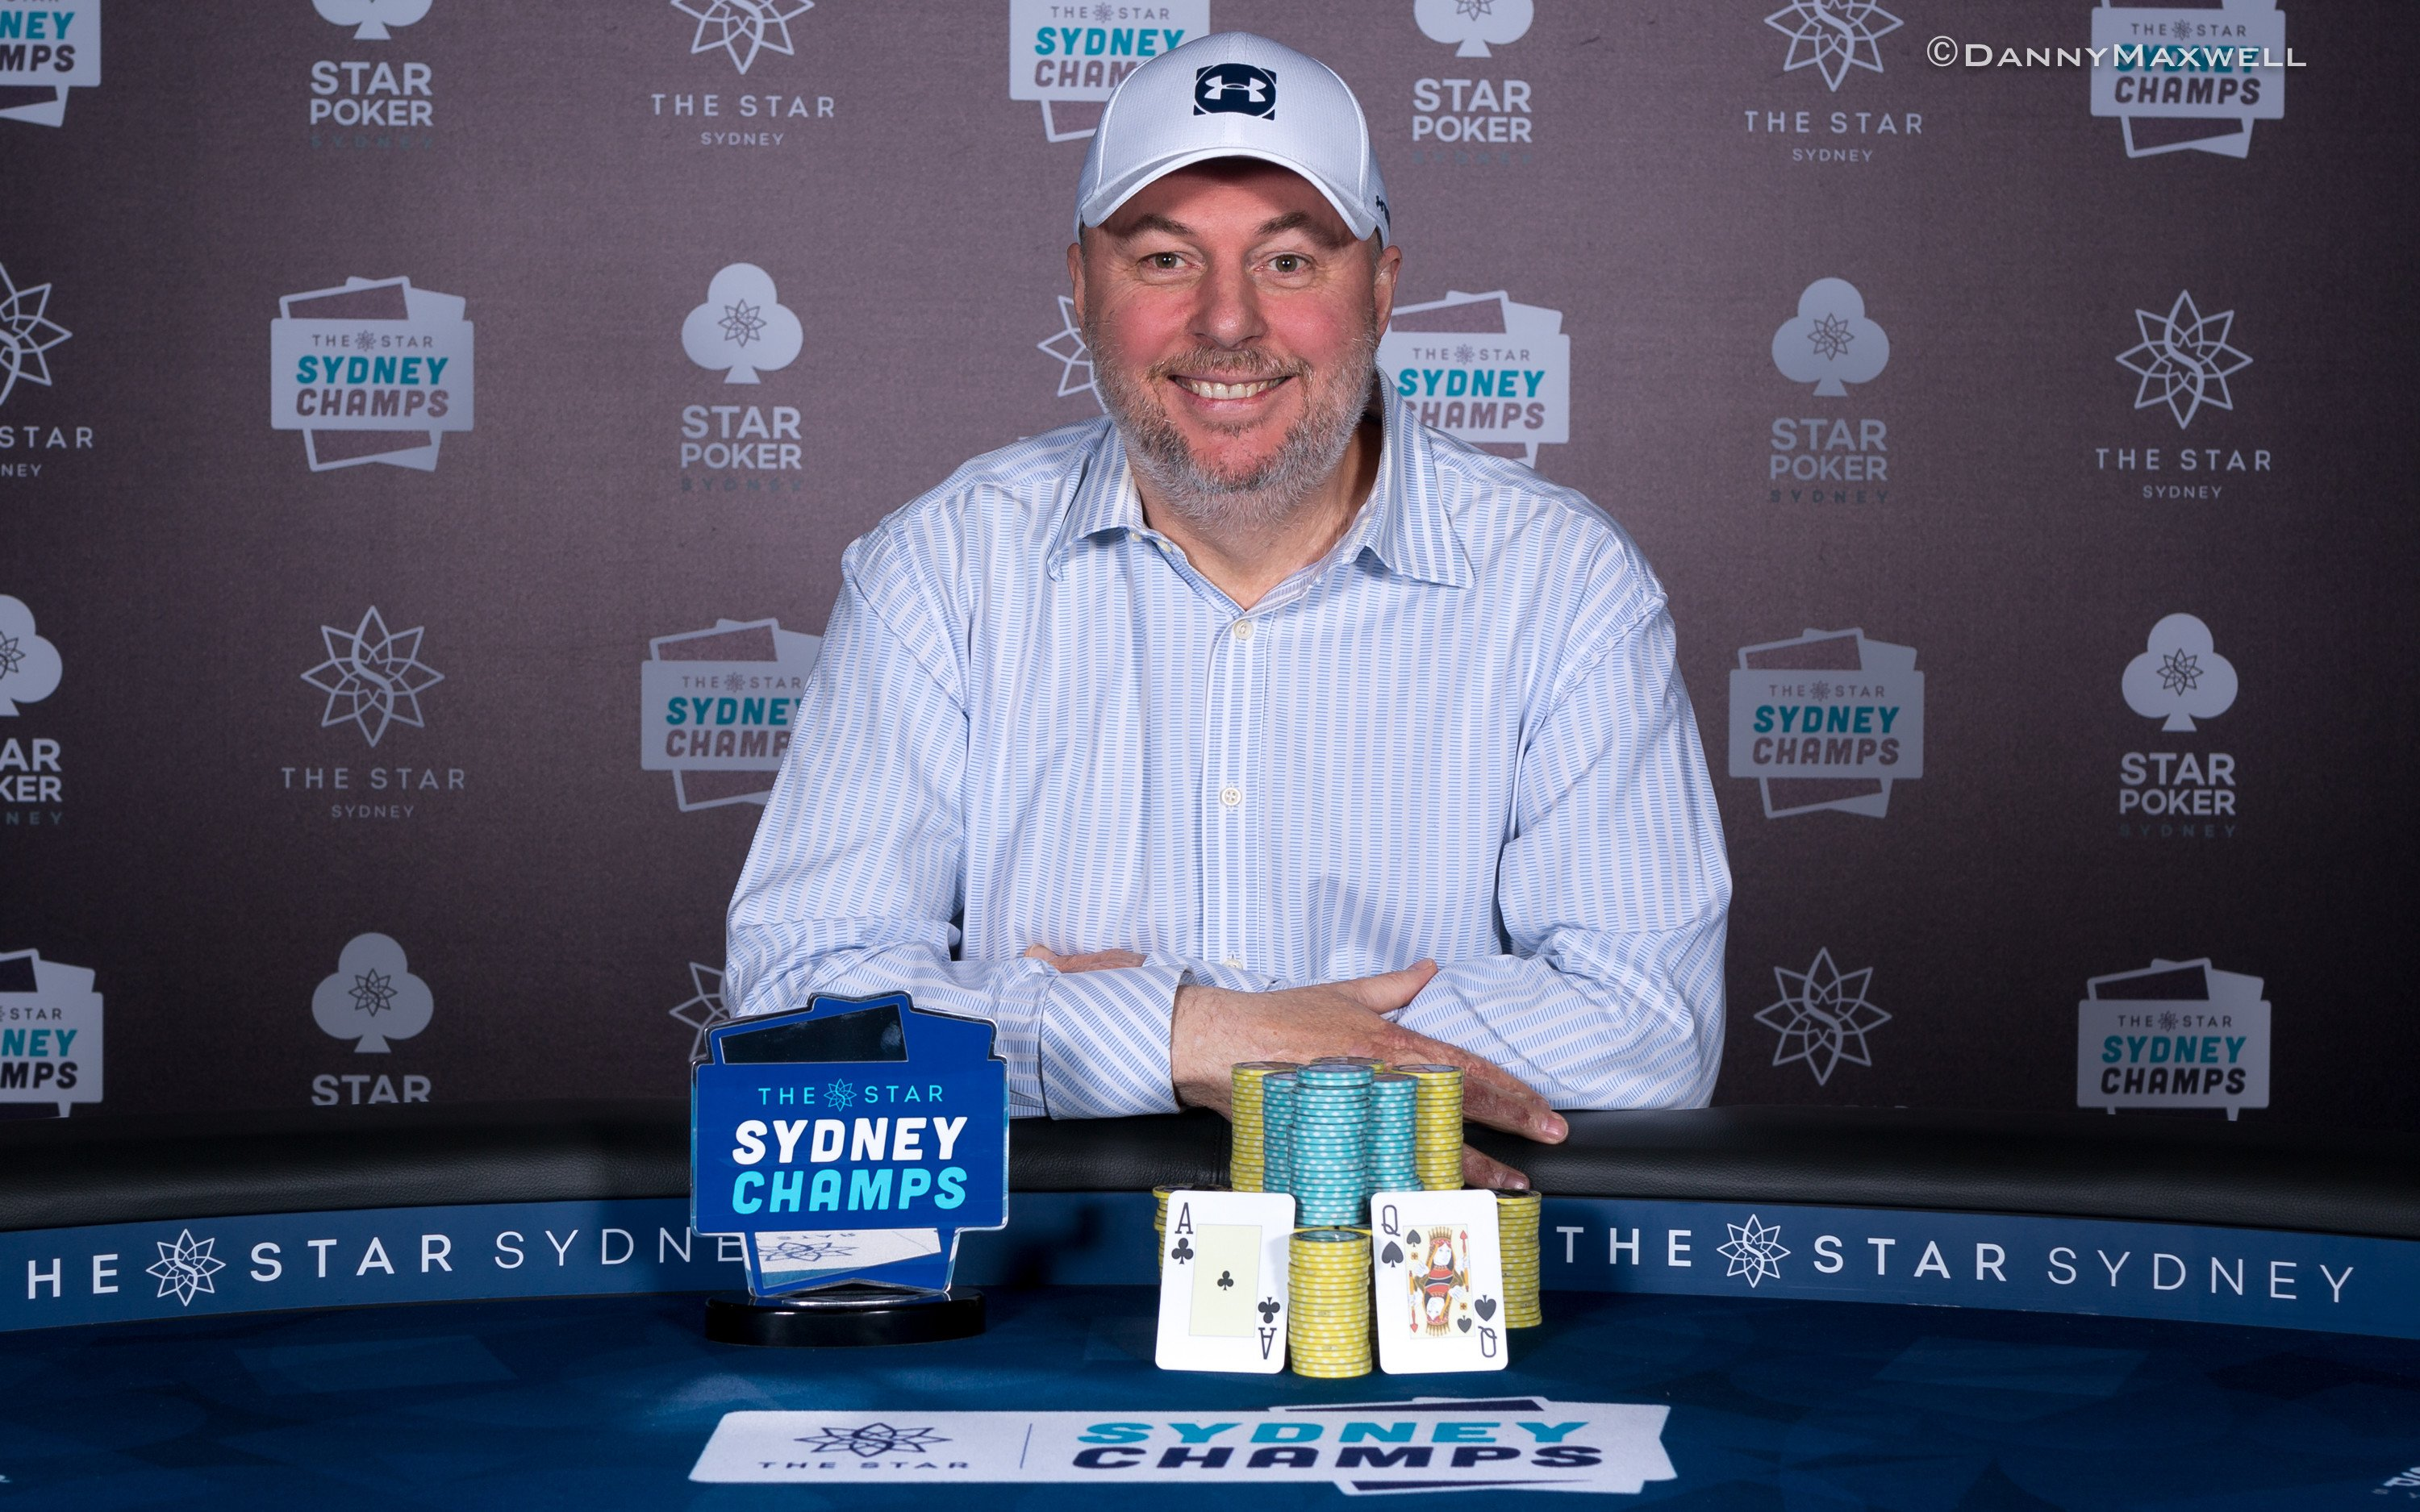 Sydney Championships 2019; Jason Gray wins $5K Challenge as more side events conclude